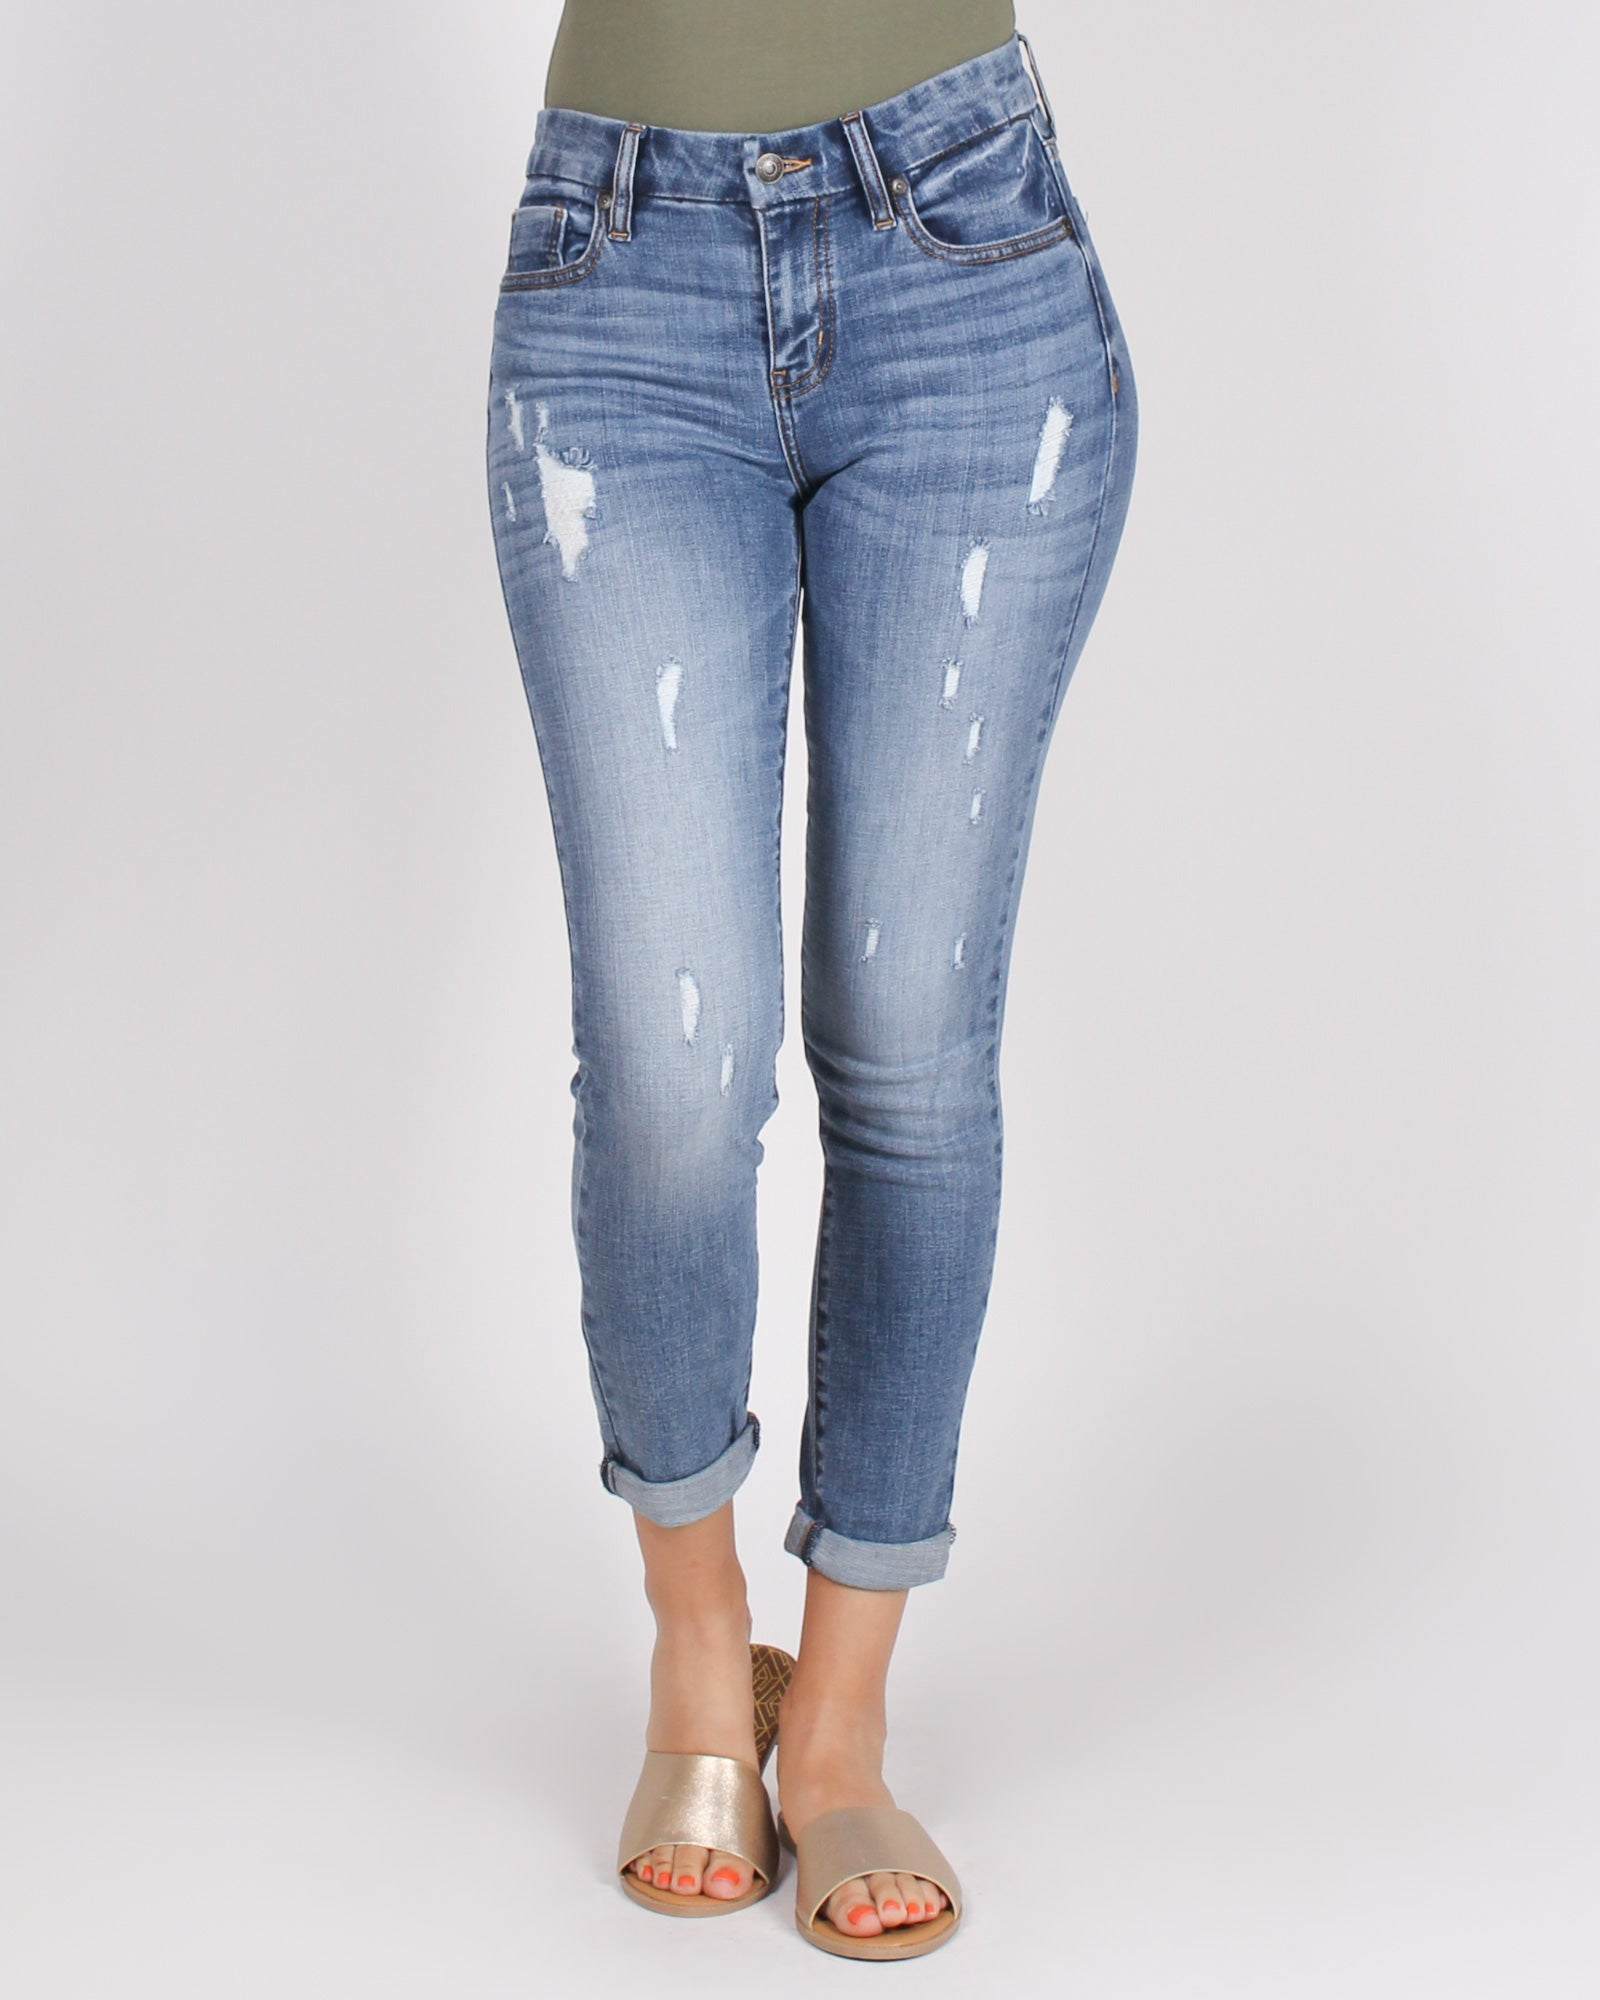 Vibin' and Thrivin' Mid-rise Jeans (Medium)